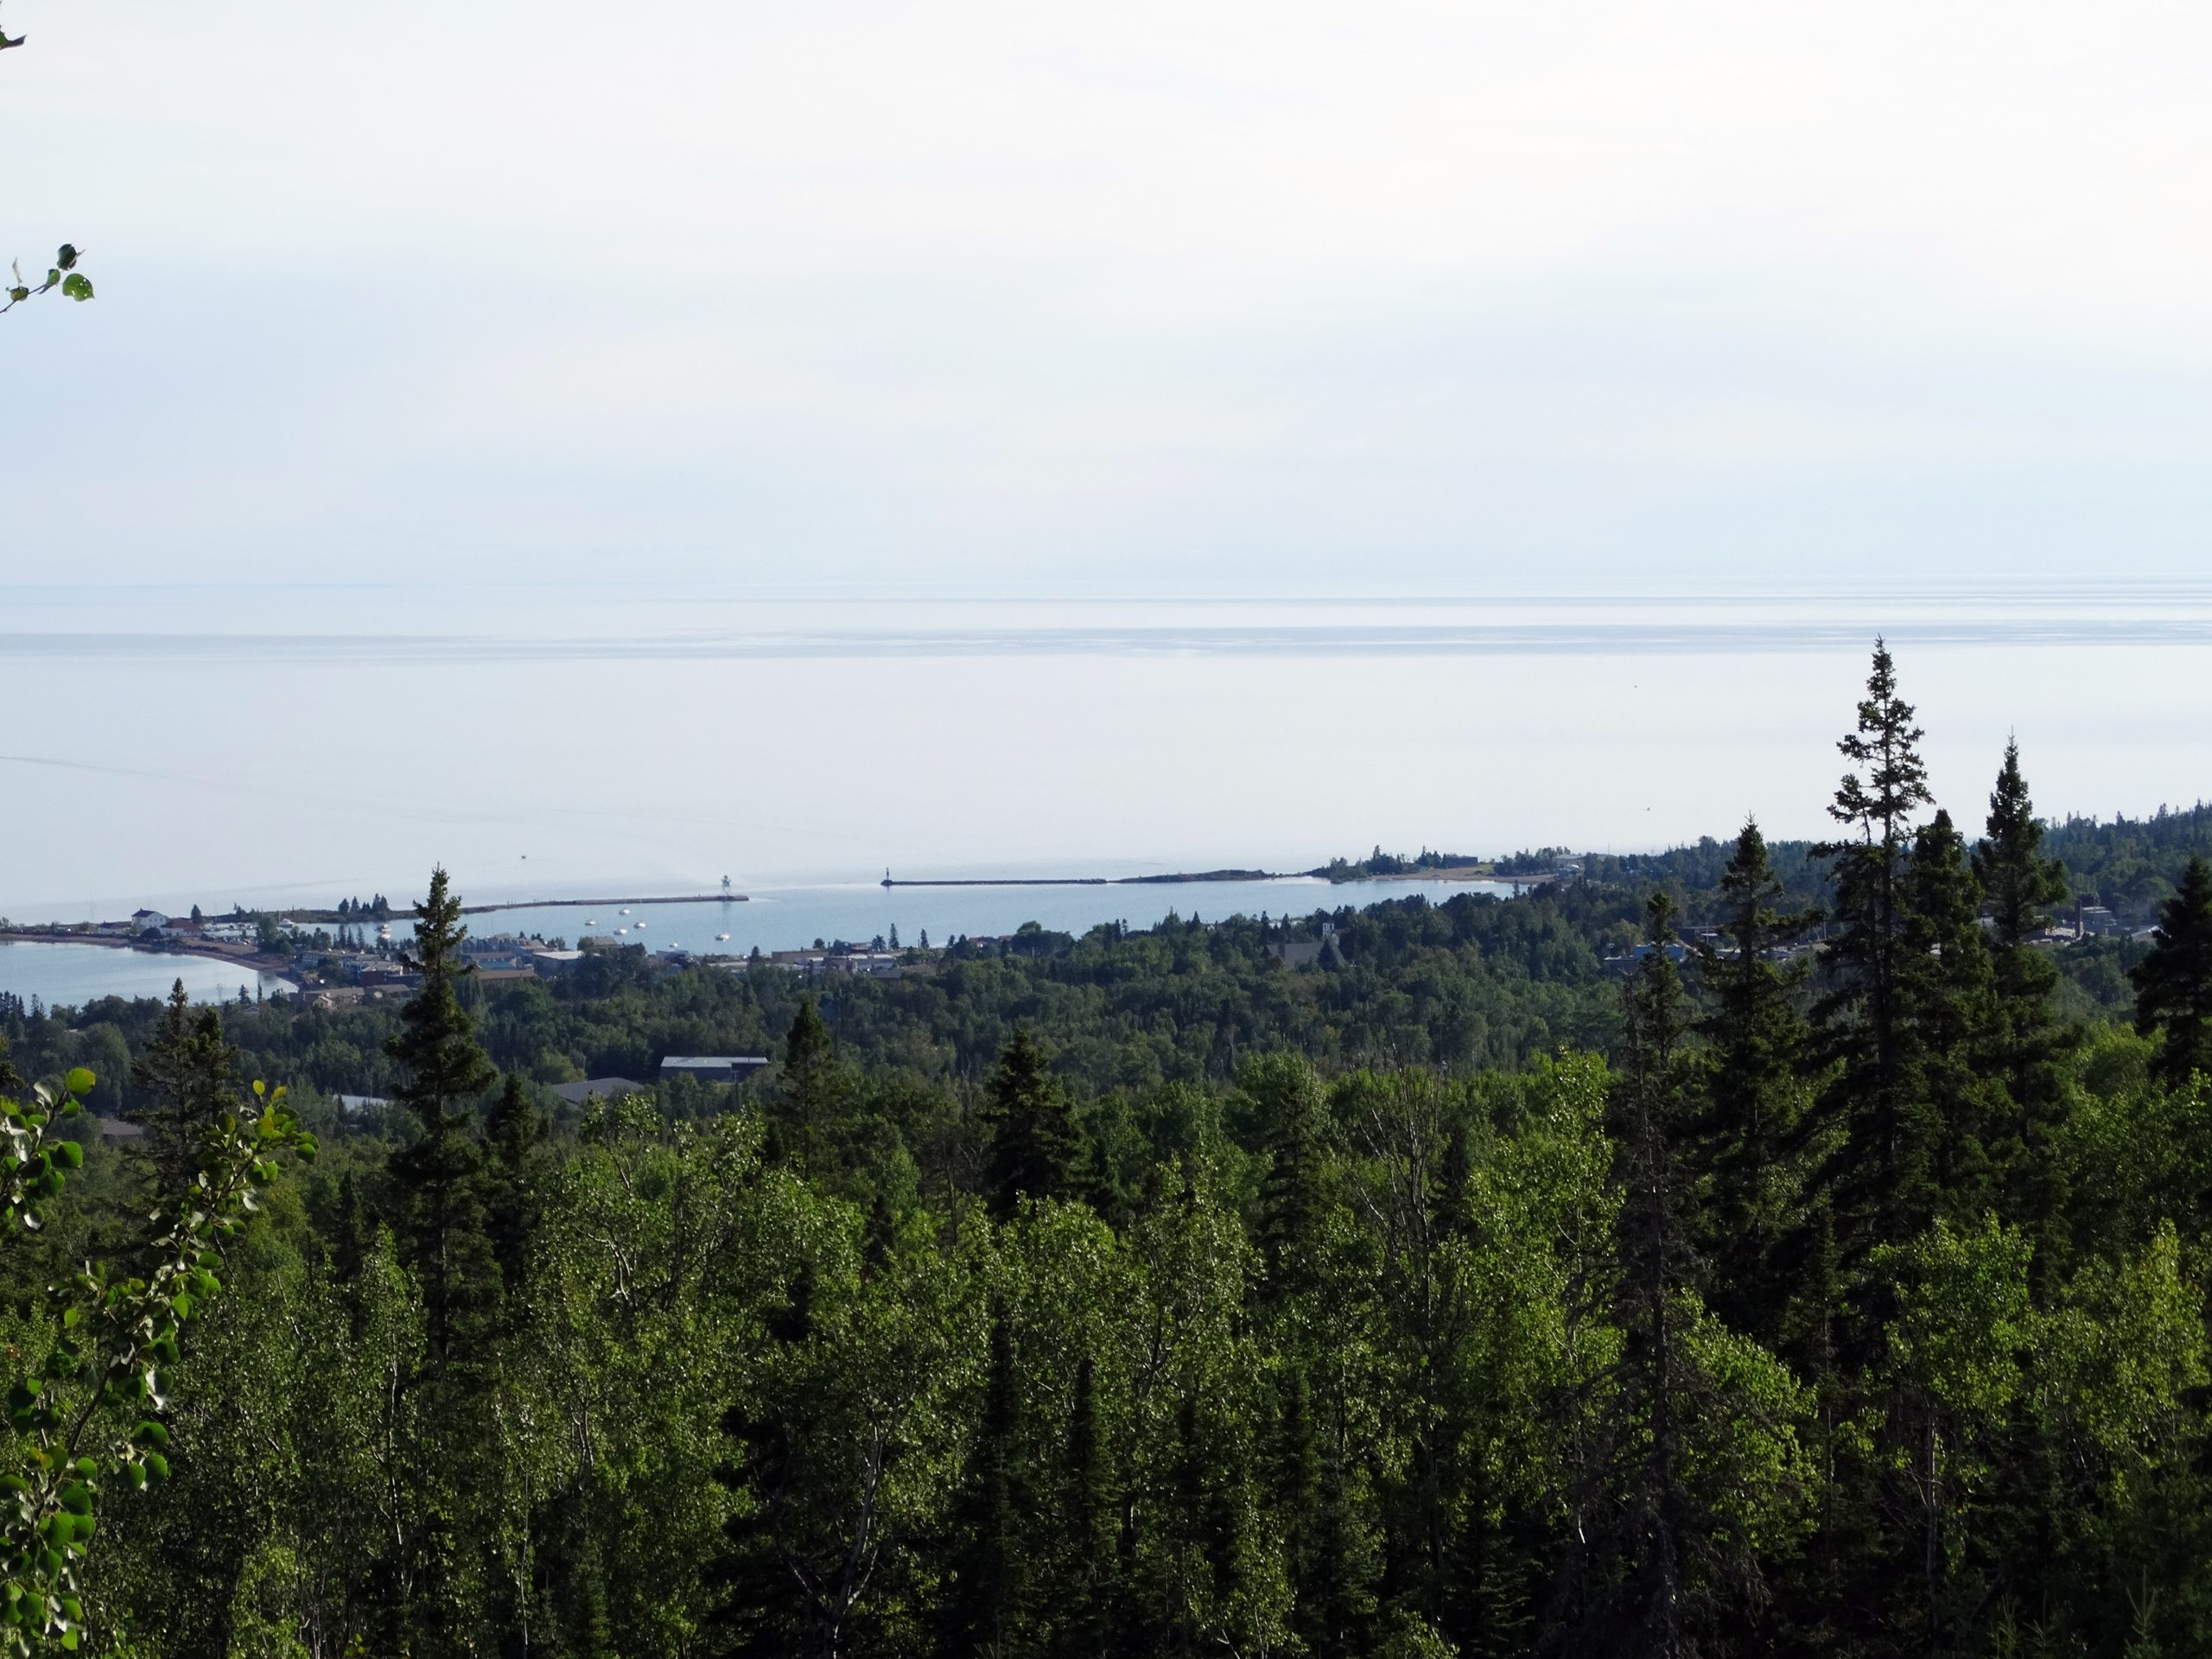 Photo of Grand Marais Harbor from a distance